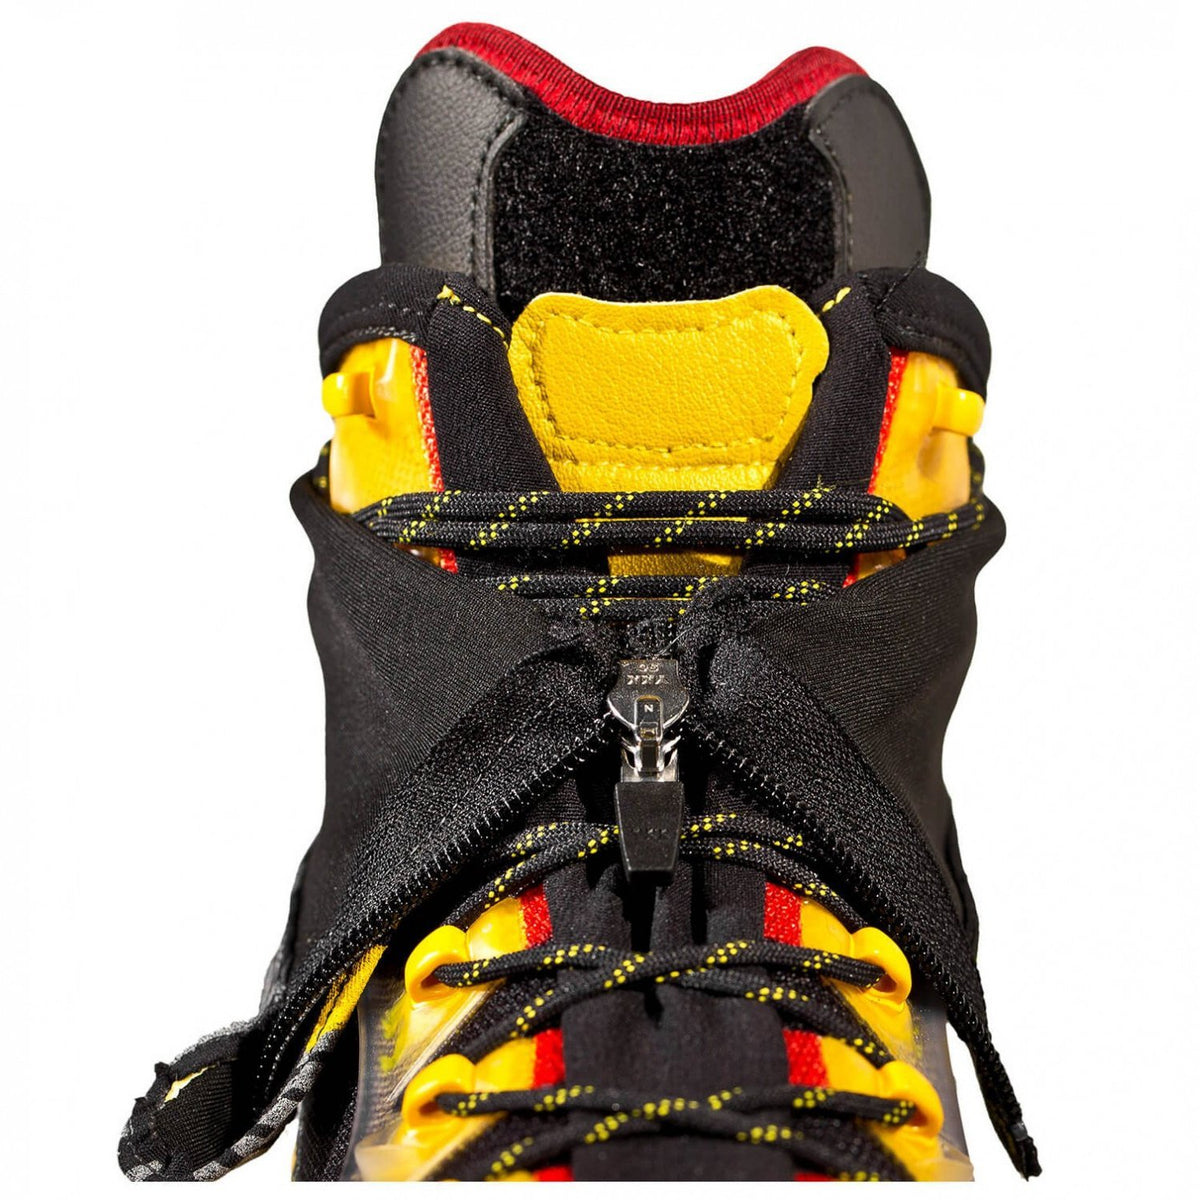 La Sportiva Trango Ice Cube Mountaineering Boot, upper zip and lace design detail